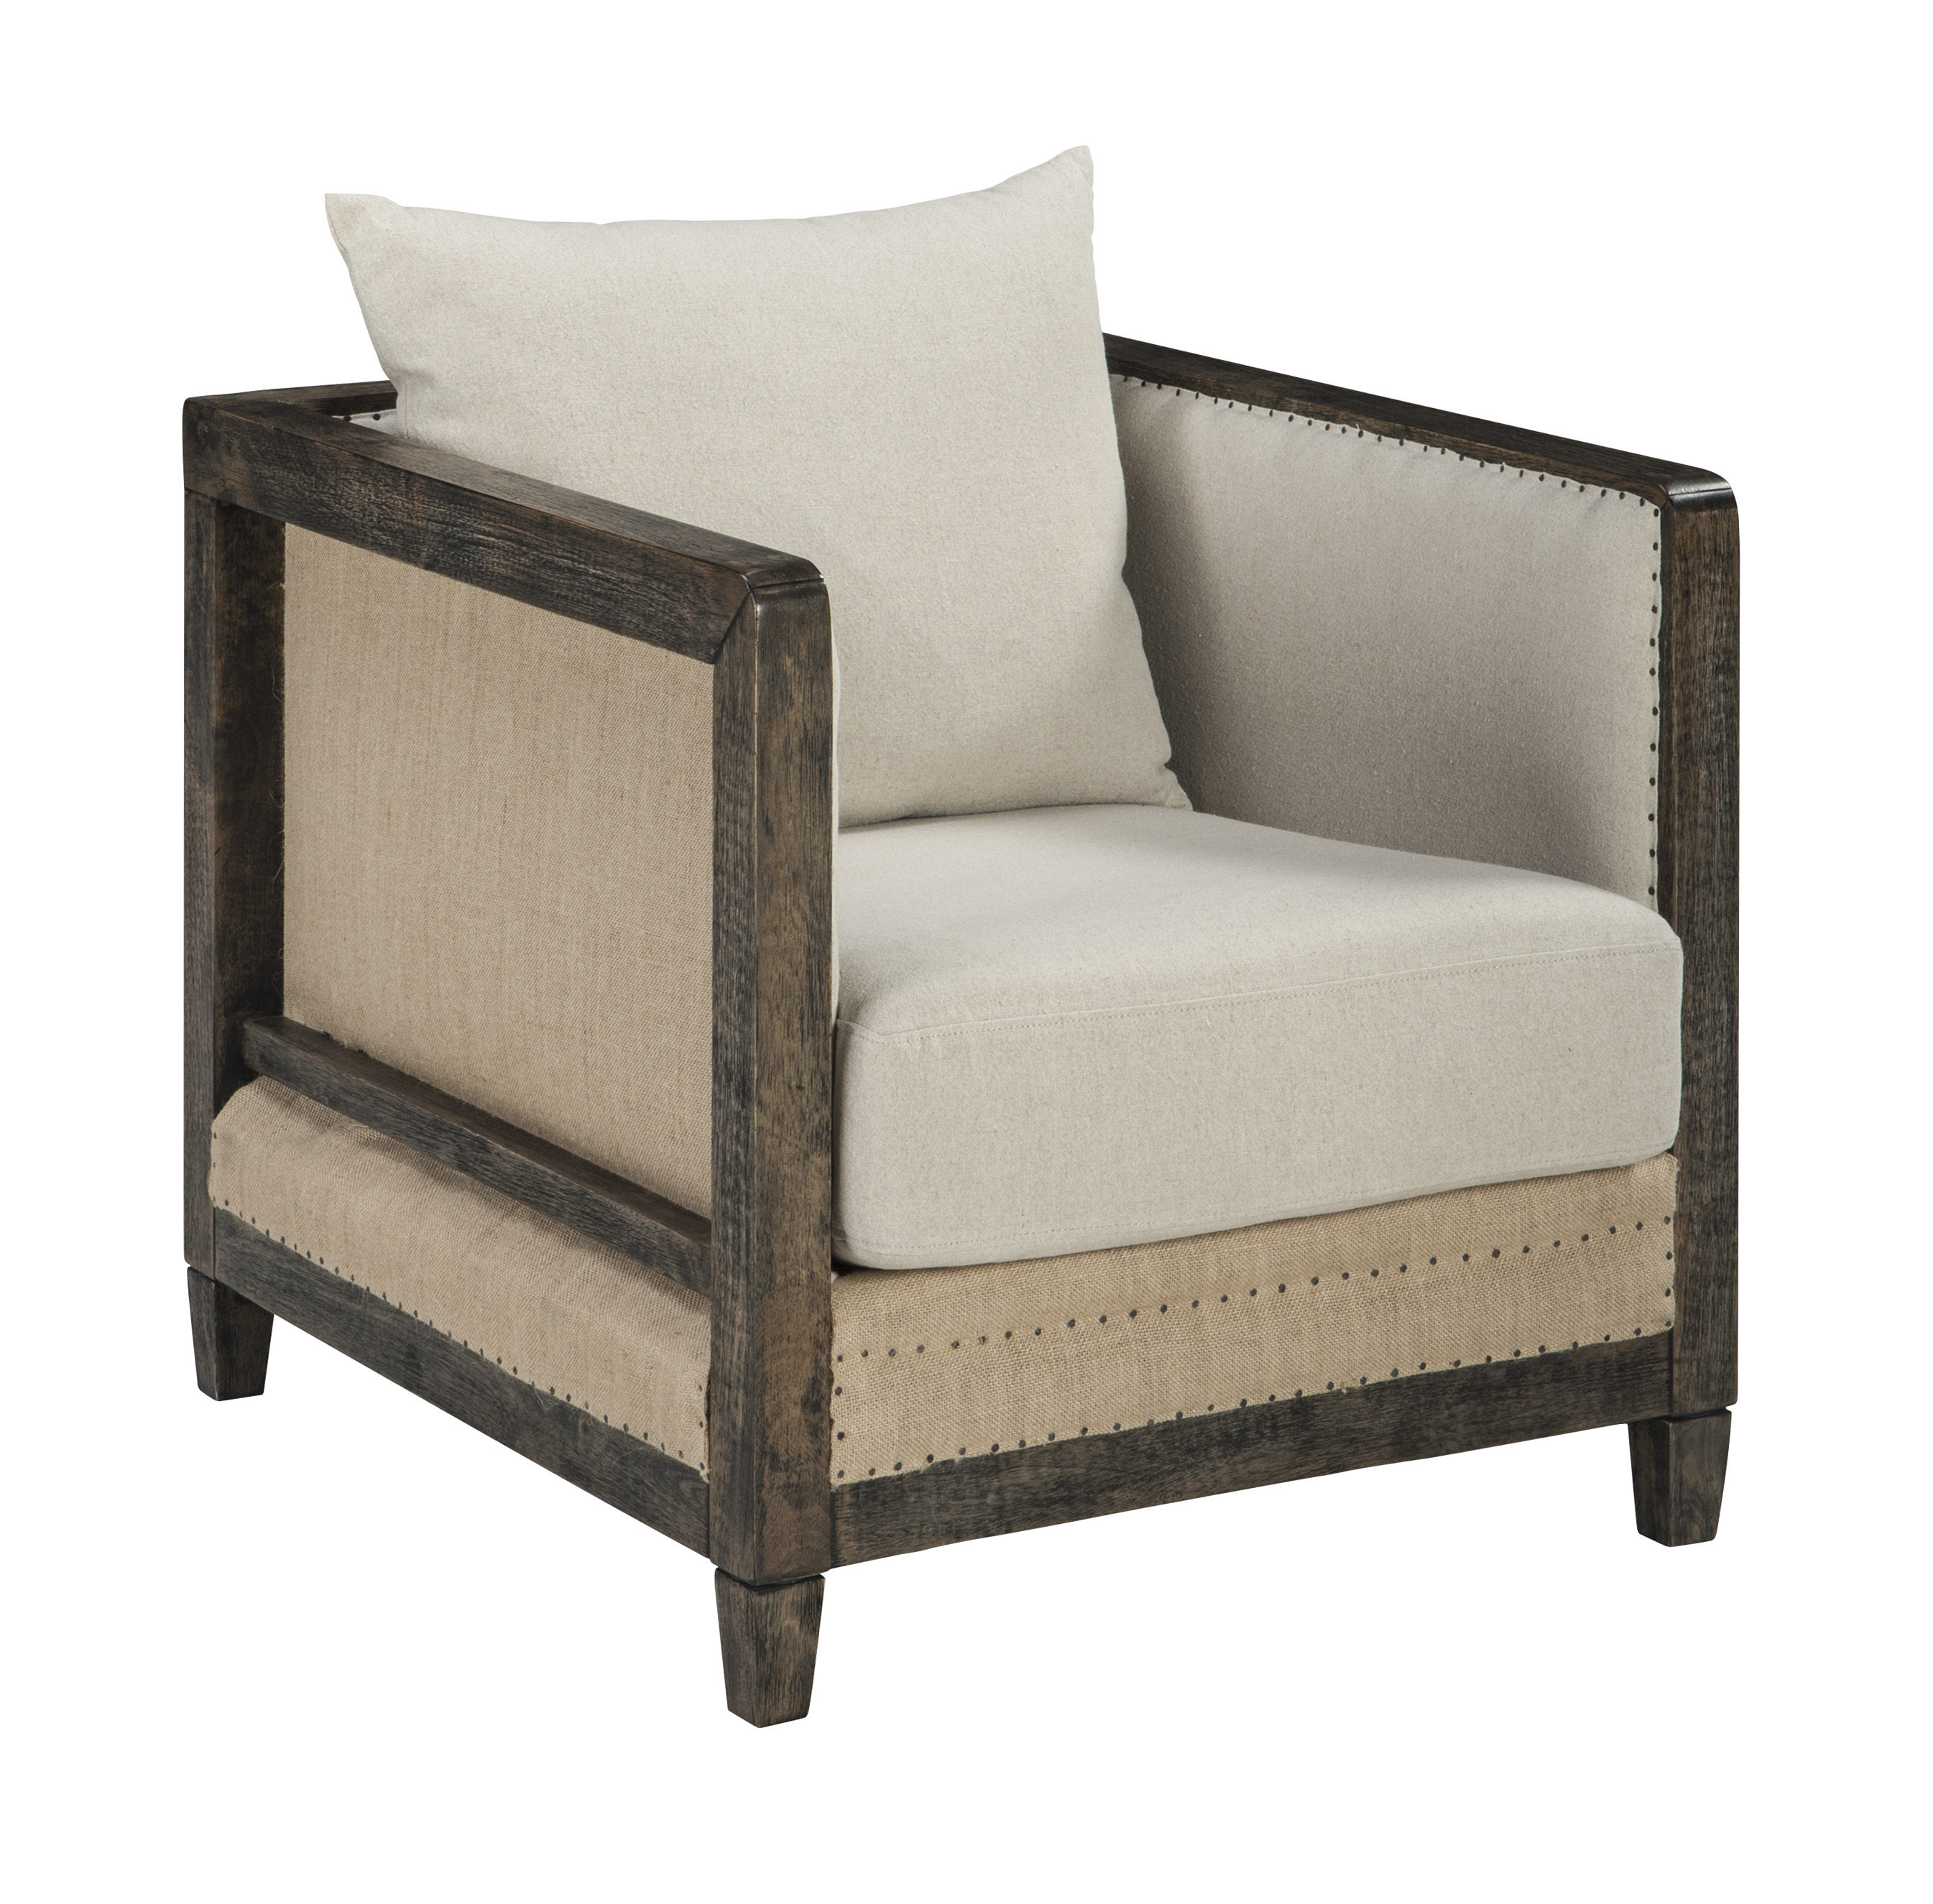 Ashley Furniture Copeland Accent Chair The Classy Home